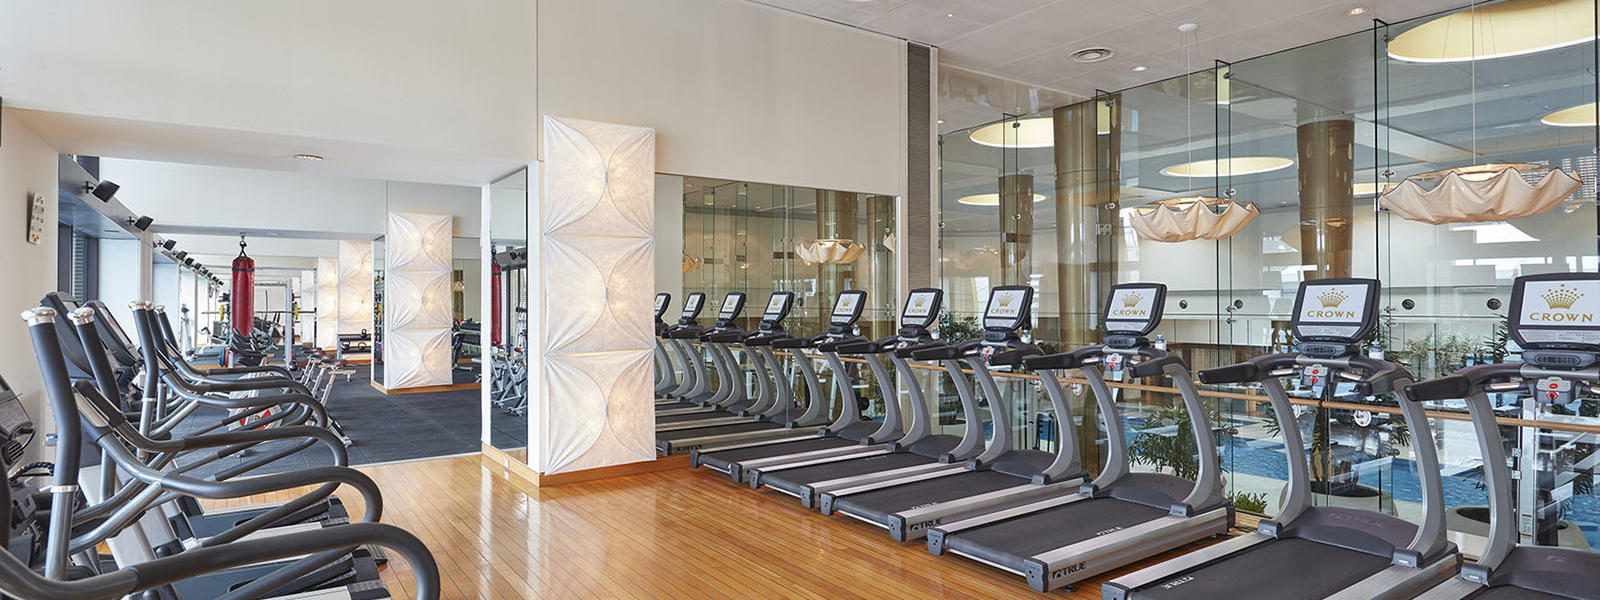 Fitness Classes at Crown Hotel Melourne